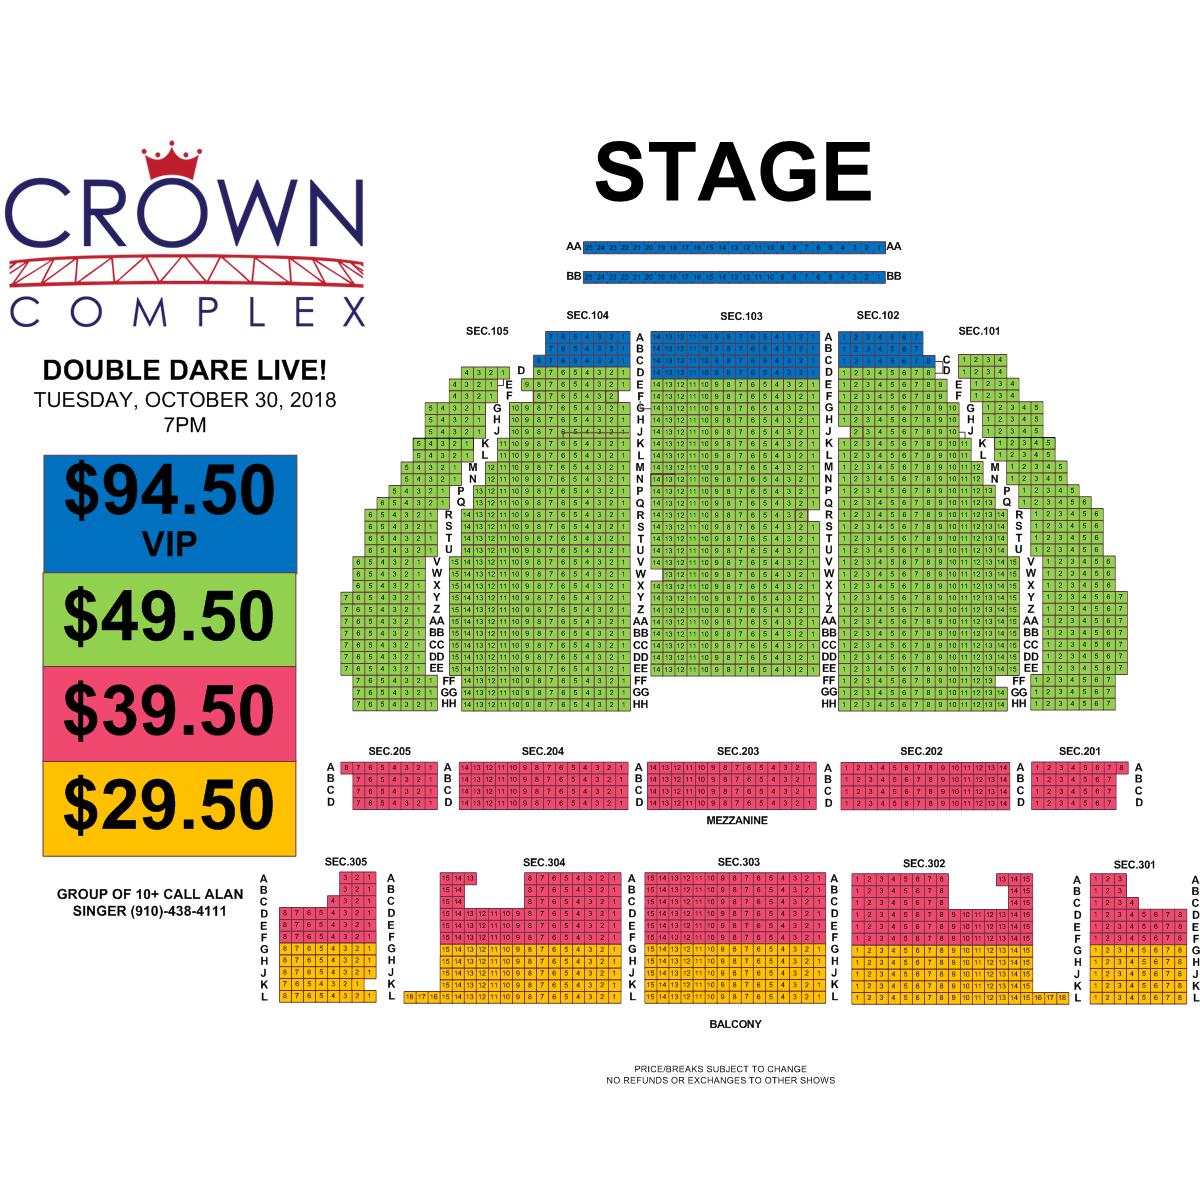 Nickelodeon Presents Double Dare Live Crown Complex